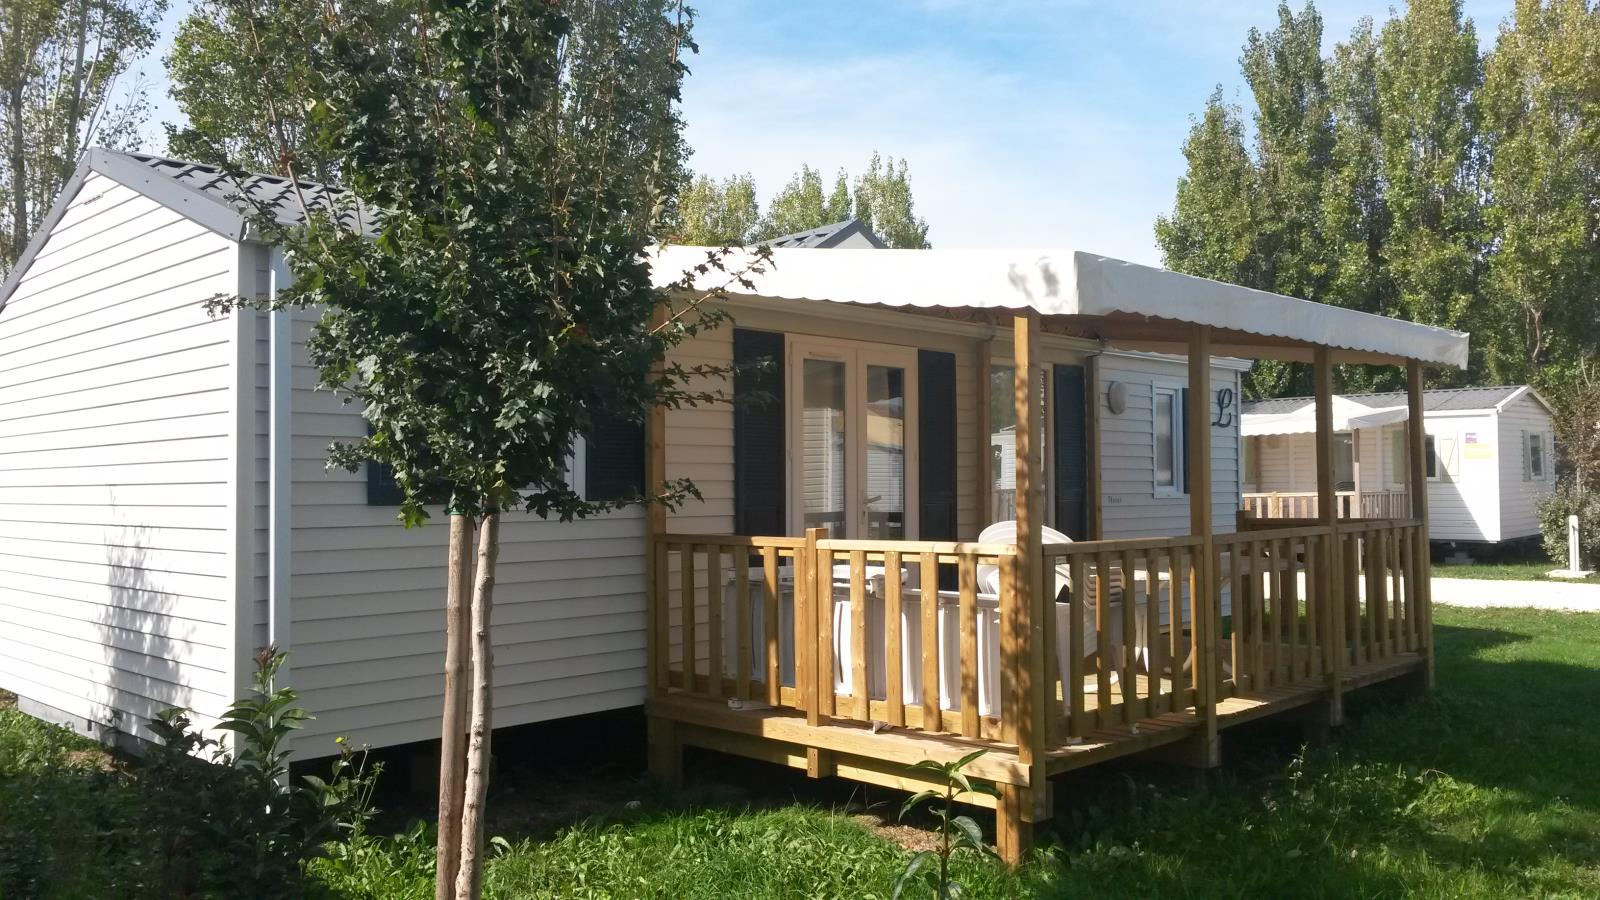 Locatifs - Mobil-Home 'Confort 3 Chambres'6 Pers (M) - Camping Airotel Oléron